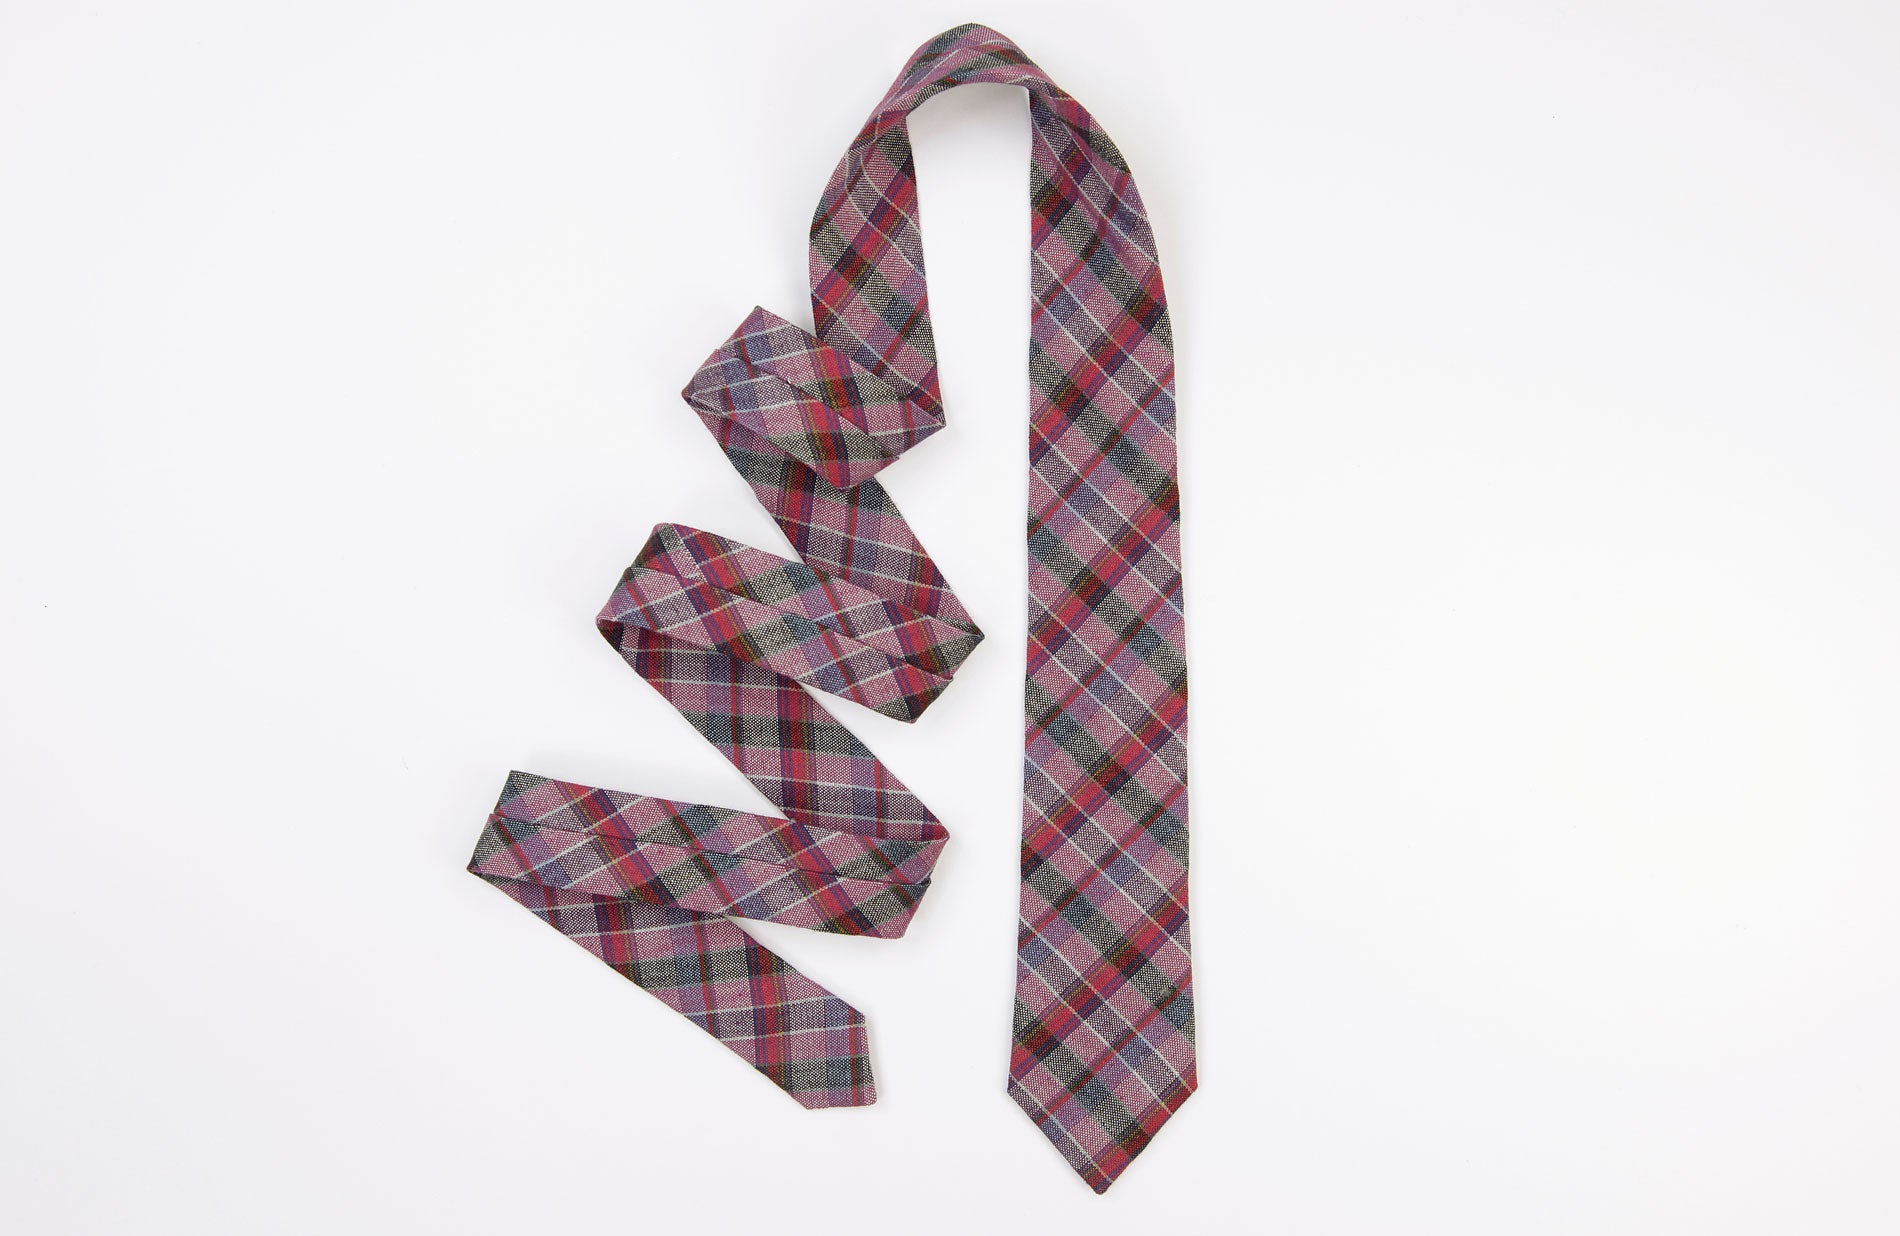 The Wayfinder Necktie